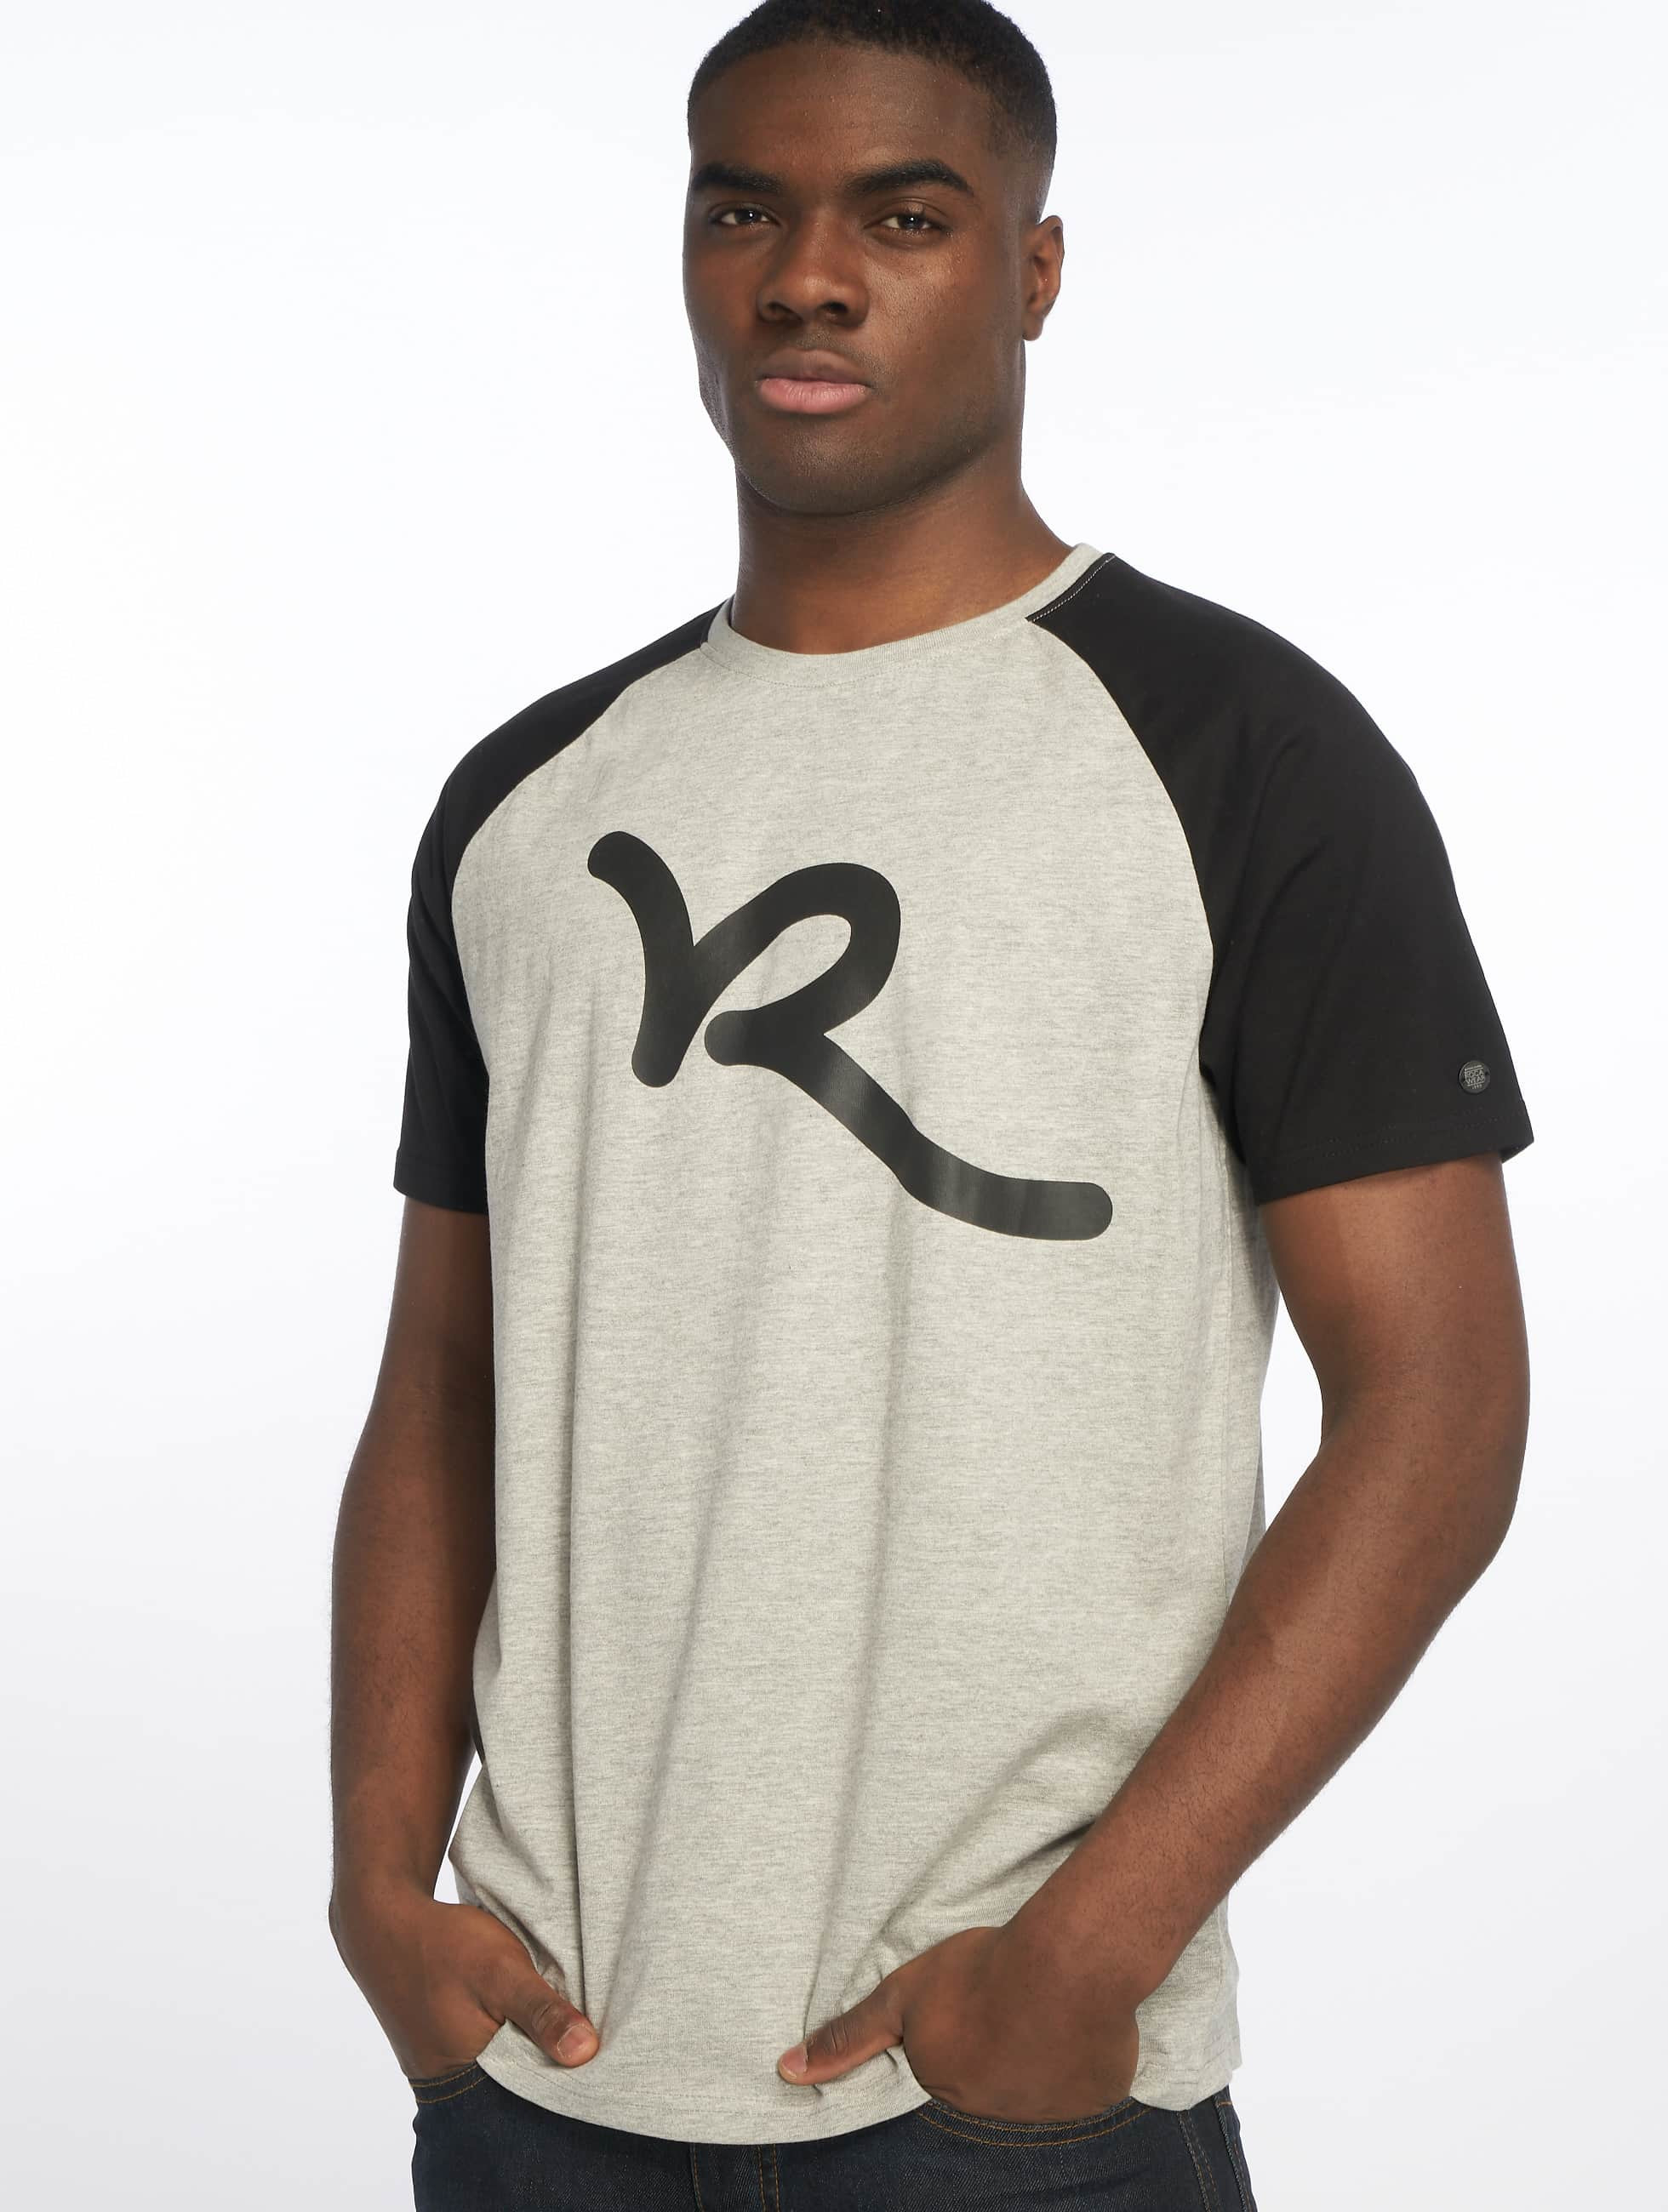 Rocawear / T-Shirt Bigs in grey S